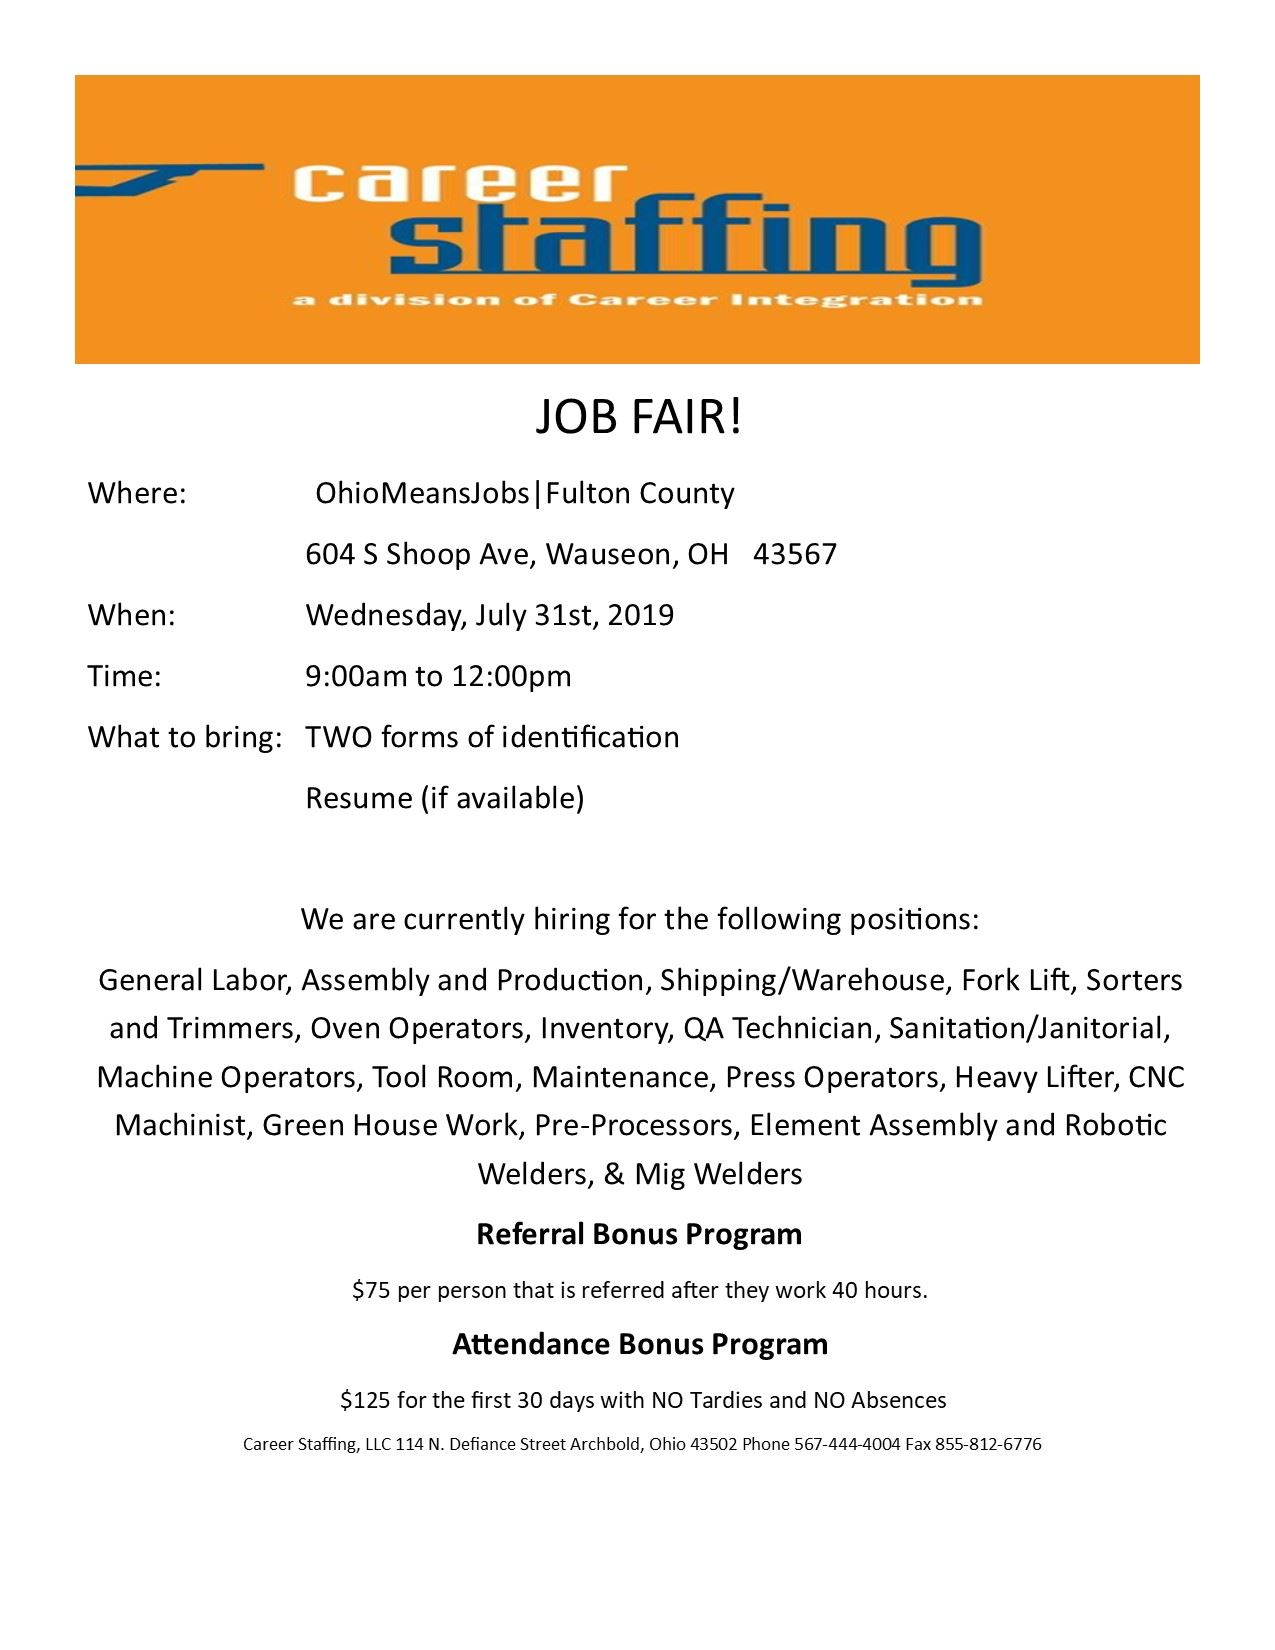 Career Staffing July31,2019